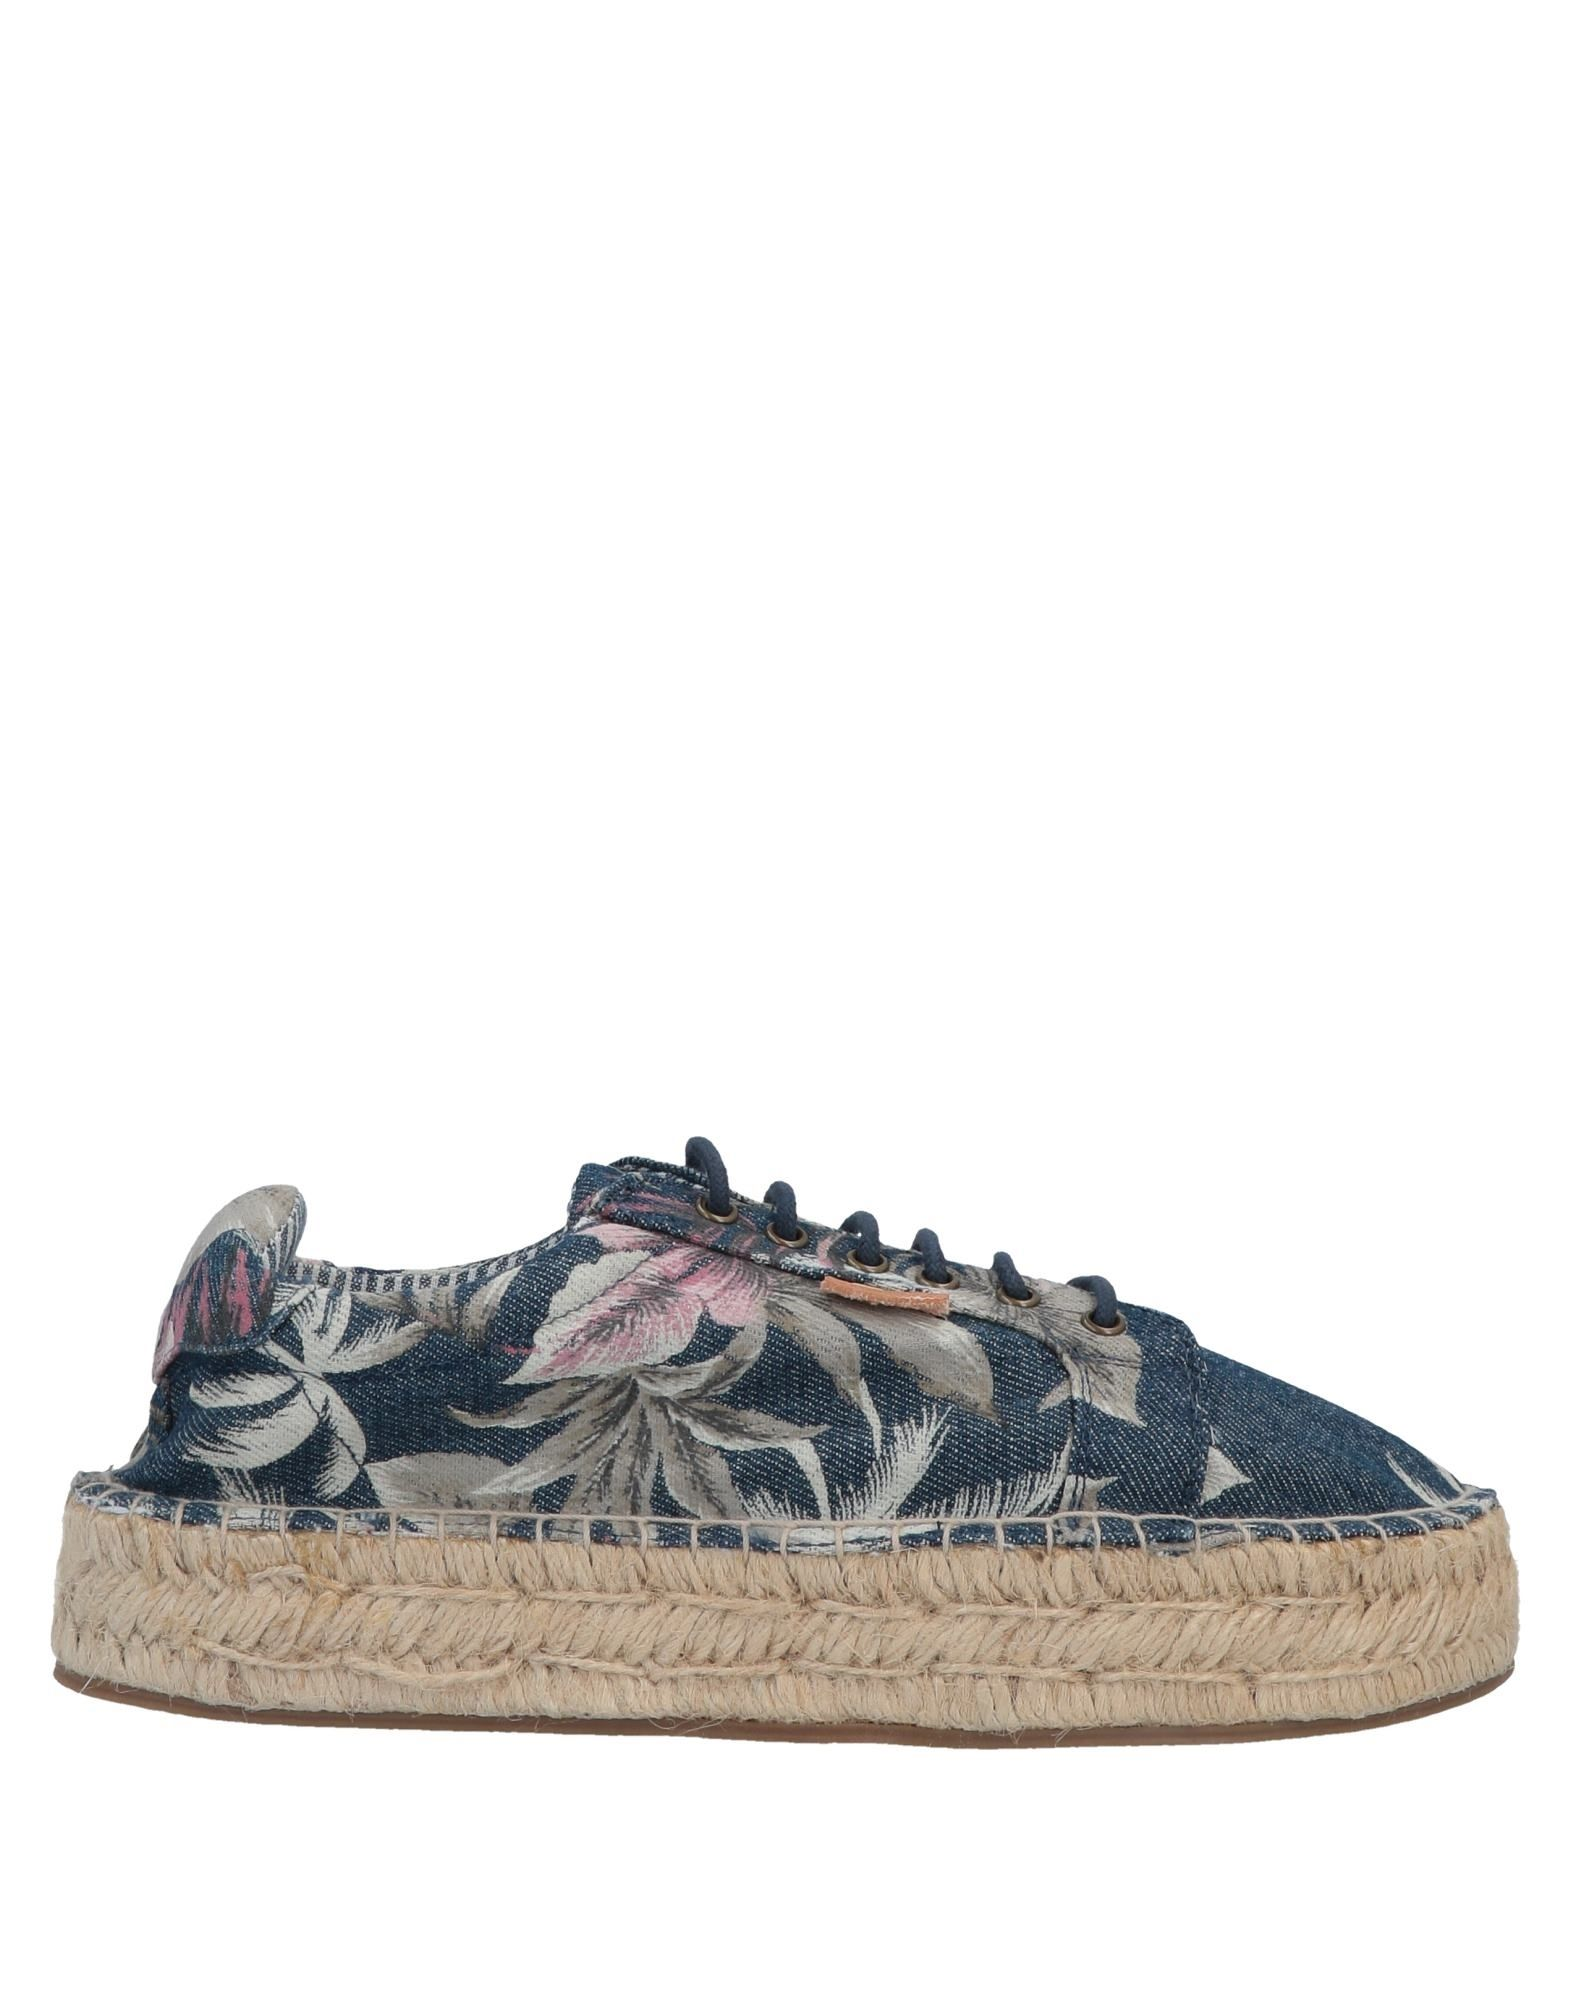 separation shoes 8b8ac cbe1b PEPE JEANS Laced shoes - Footwear | YOOX.COM